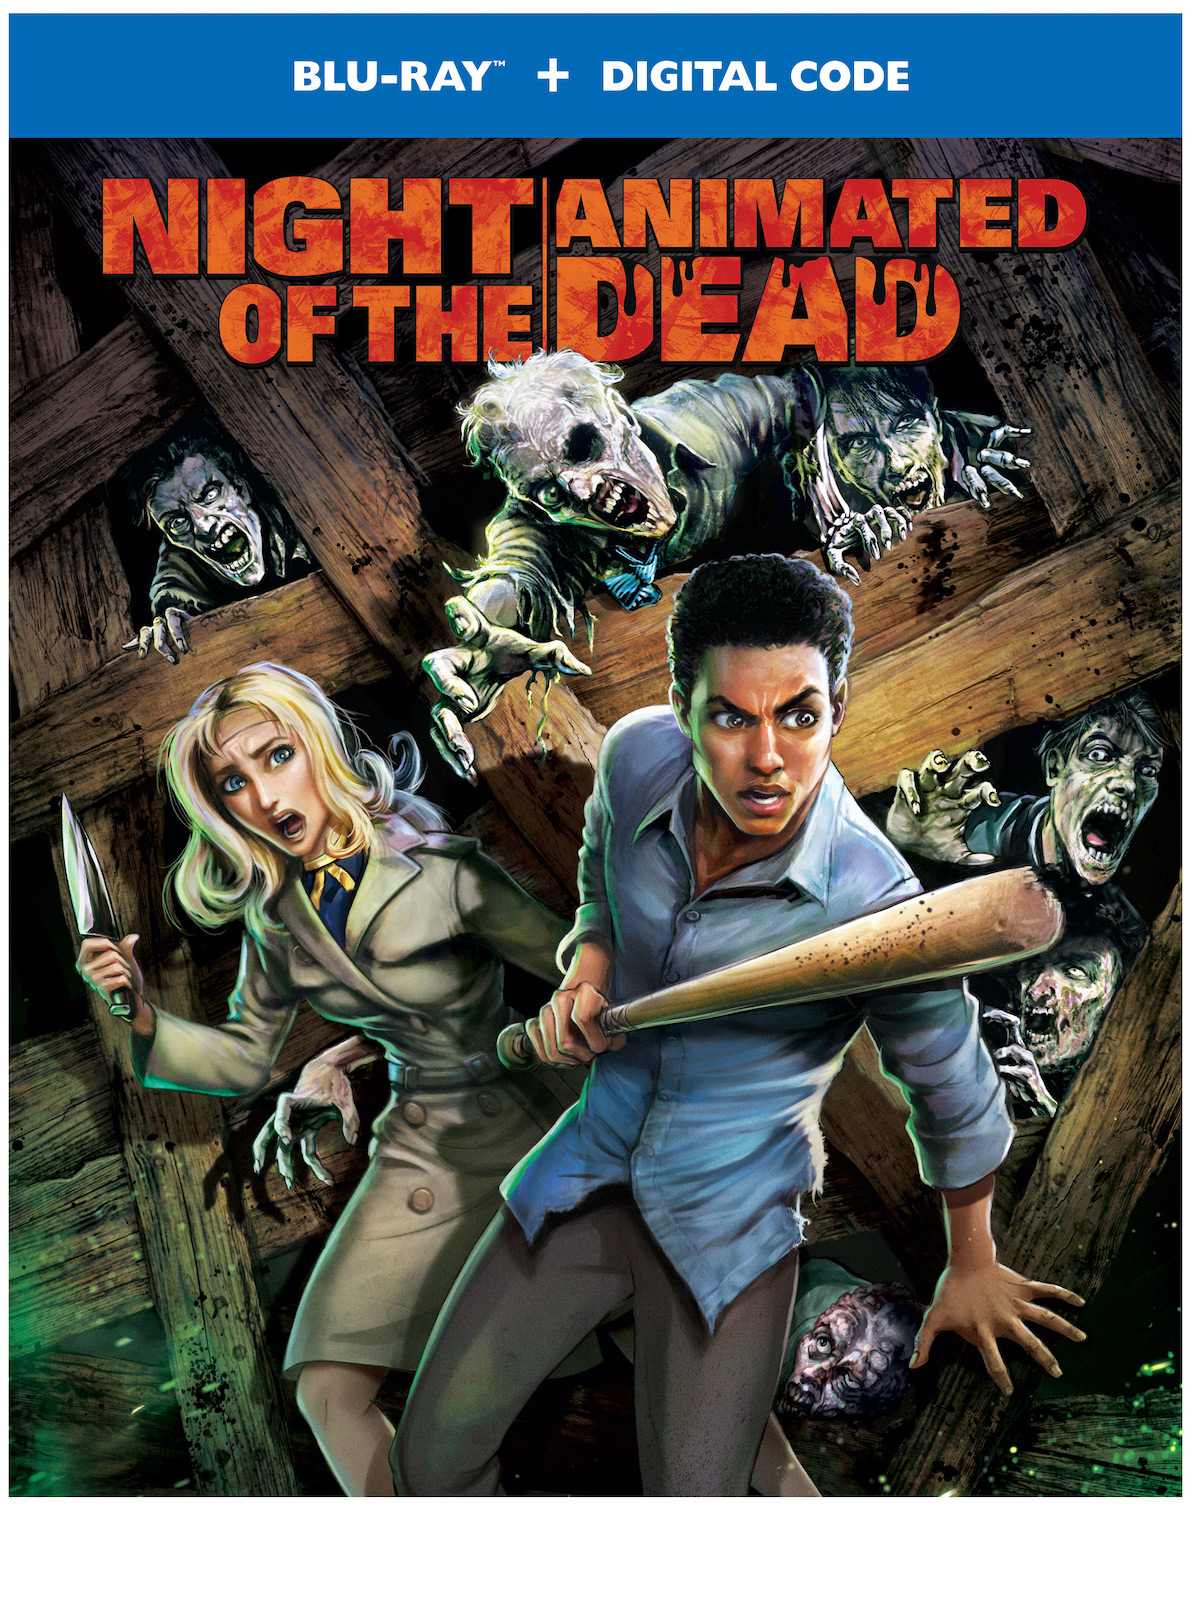 Night of the Animated Dead affiche film